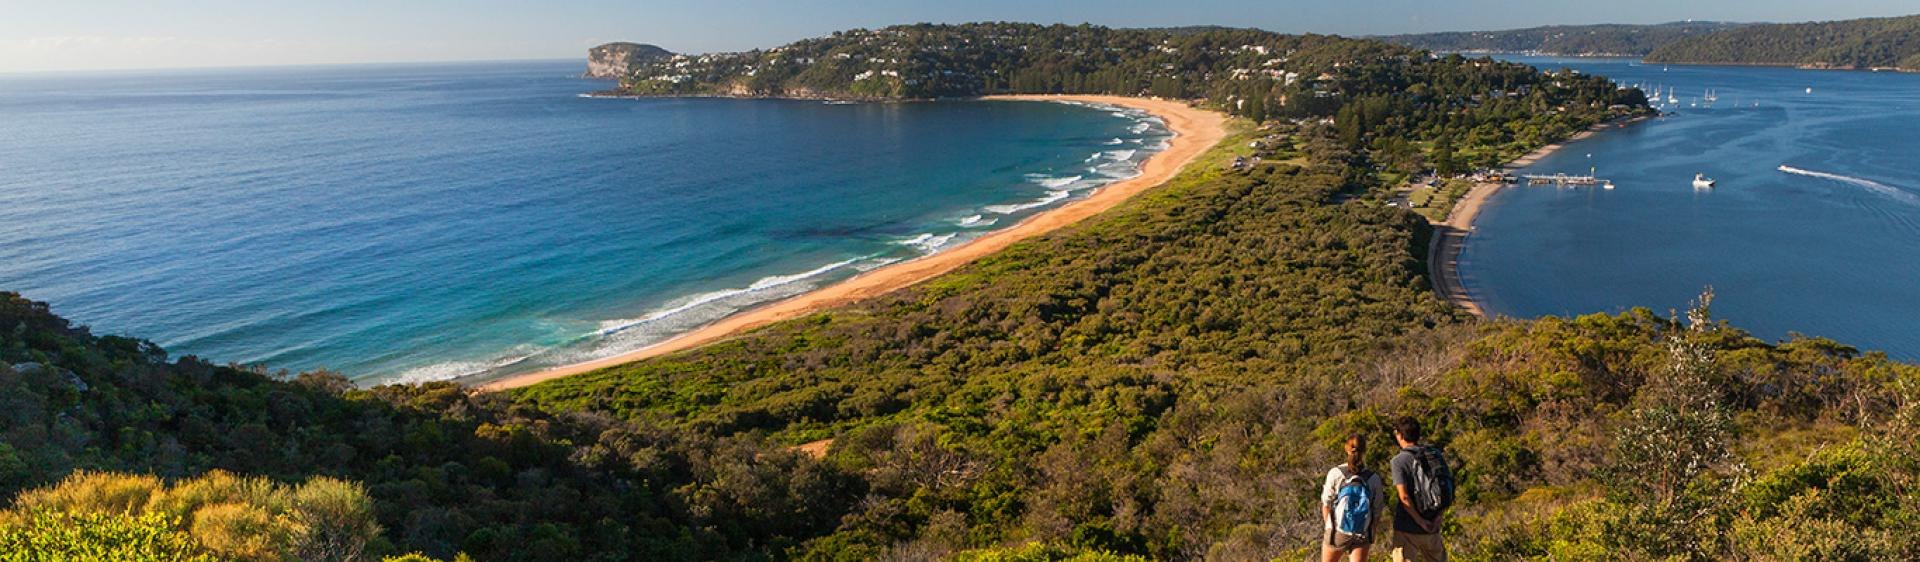 棕櫚海灘(Palm Beach)巴倫喬燈塔步徑(Barrenjoey Lighthouse Track)